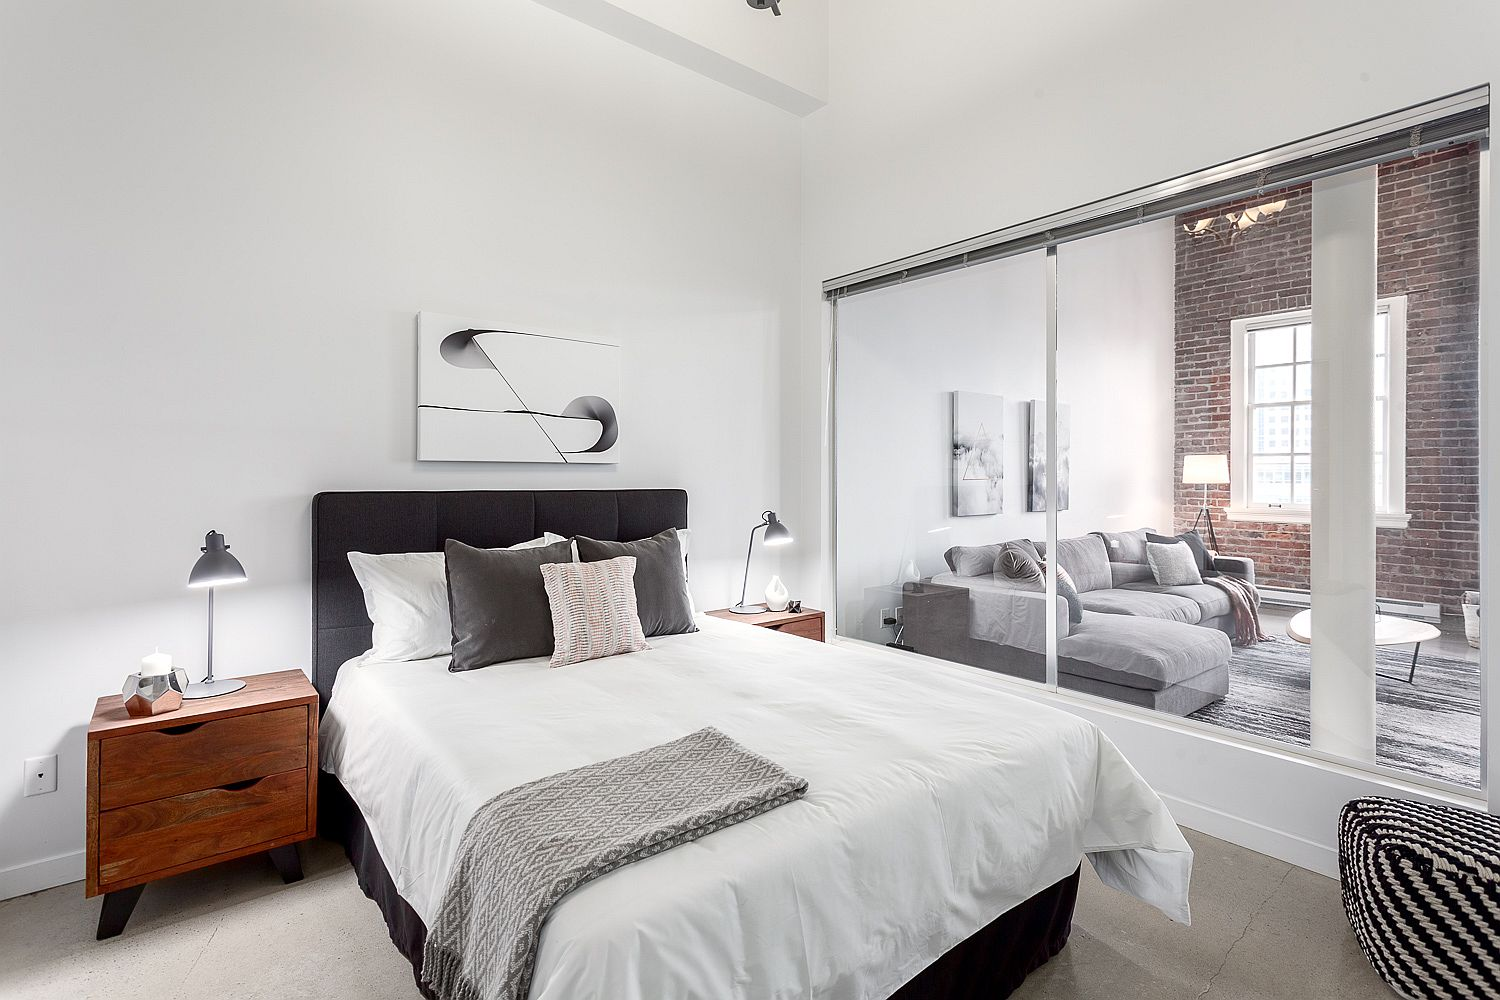 Glass windows connect the bedroom with the living area